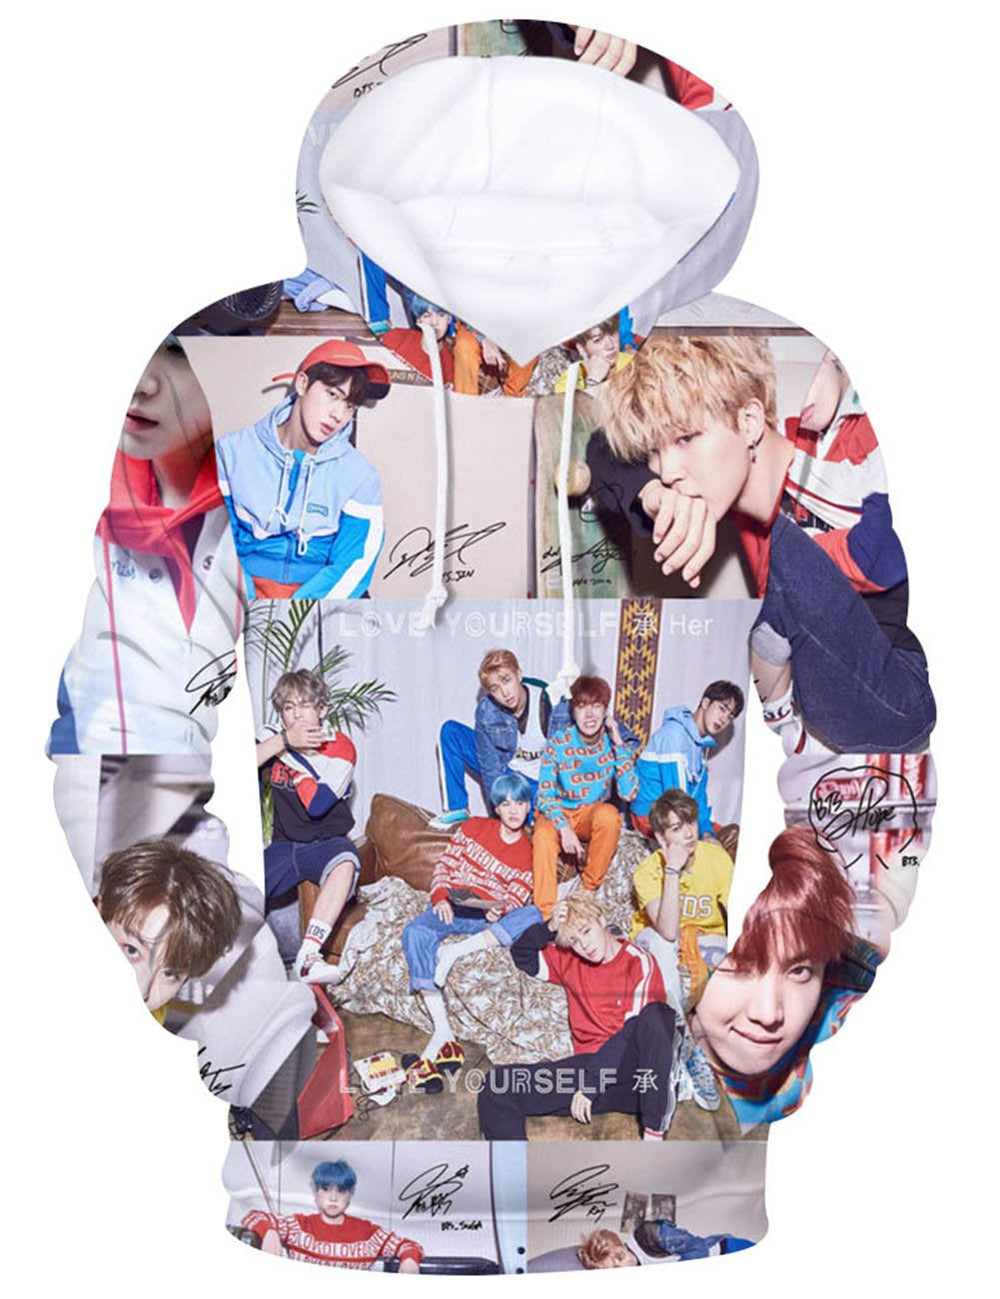 bts celebrity trend clothes